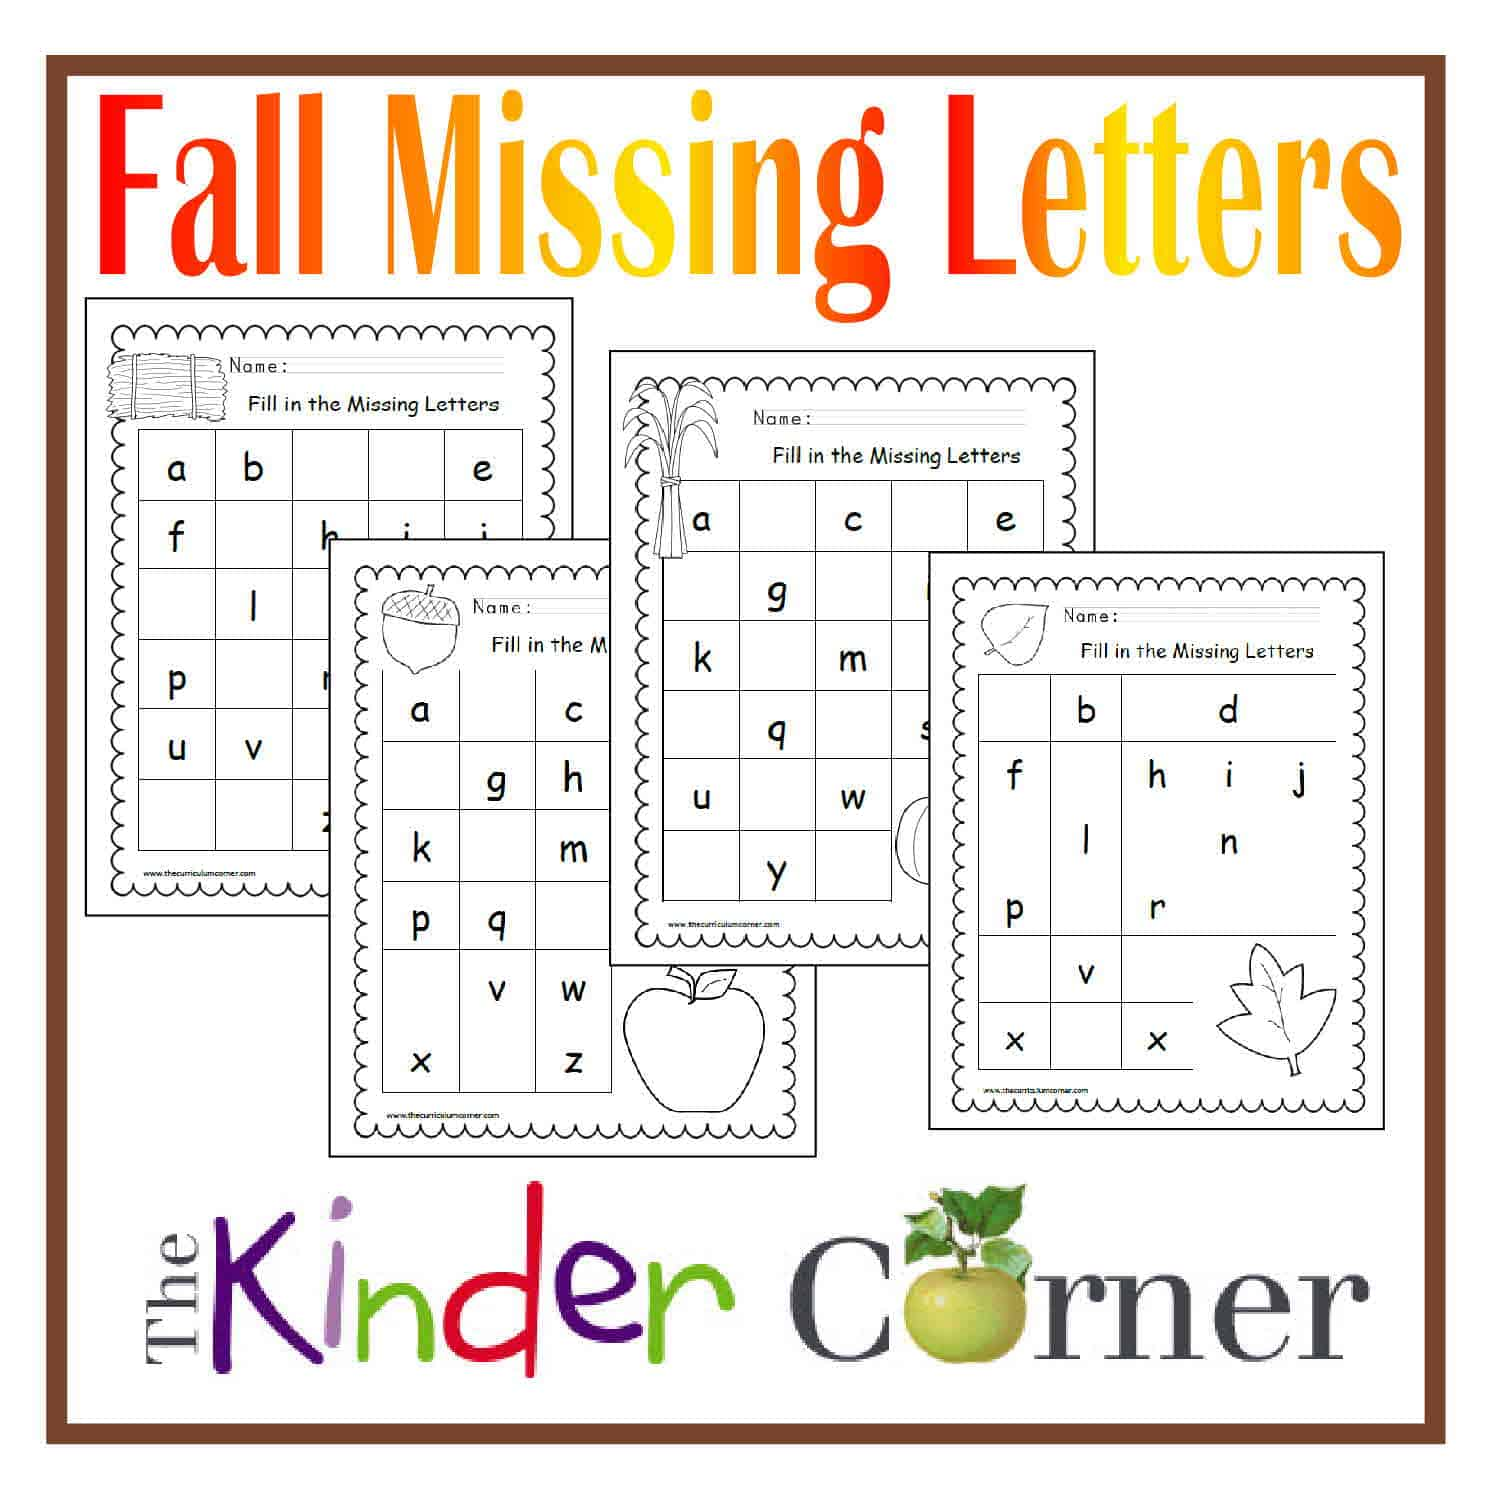 Fall Missing Letters Printable Practice Pages FREE from The Curriculum ...